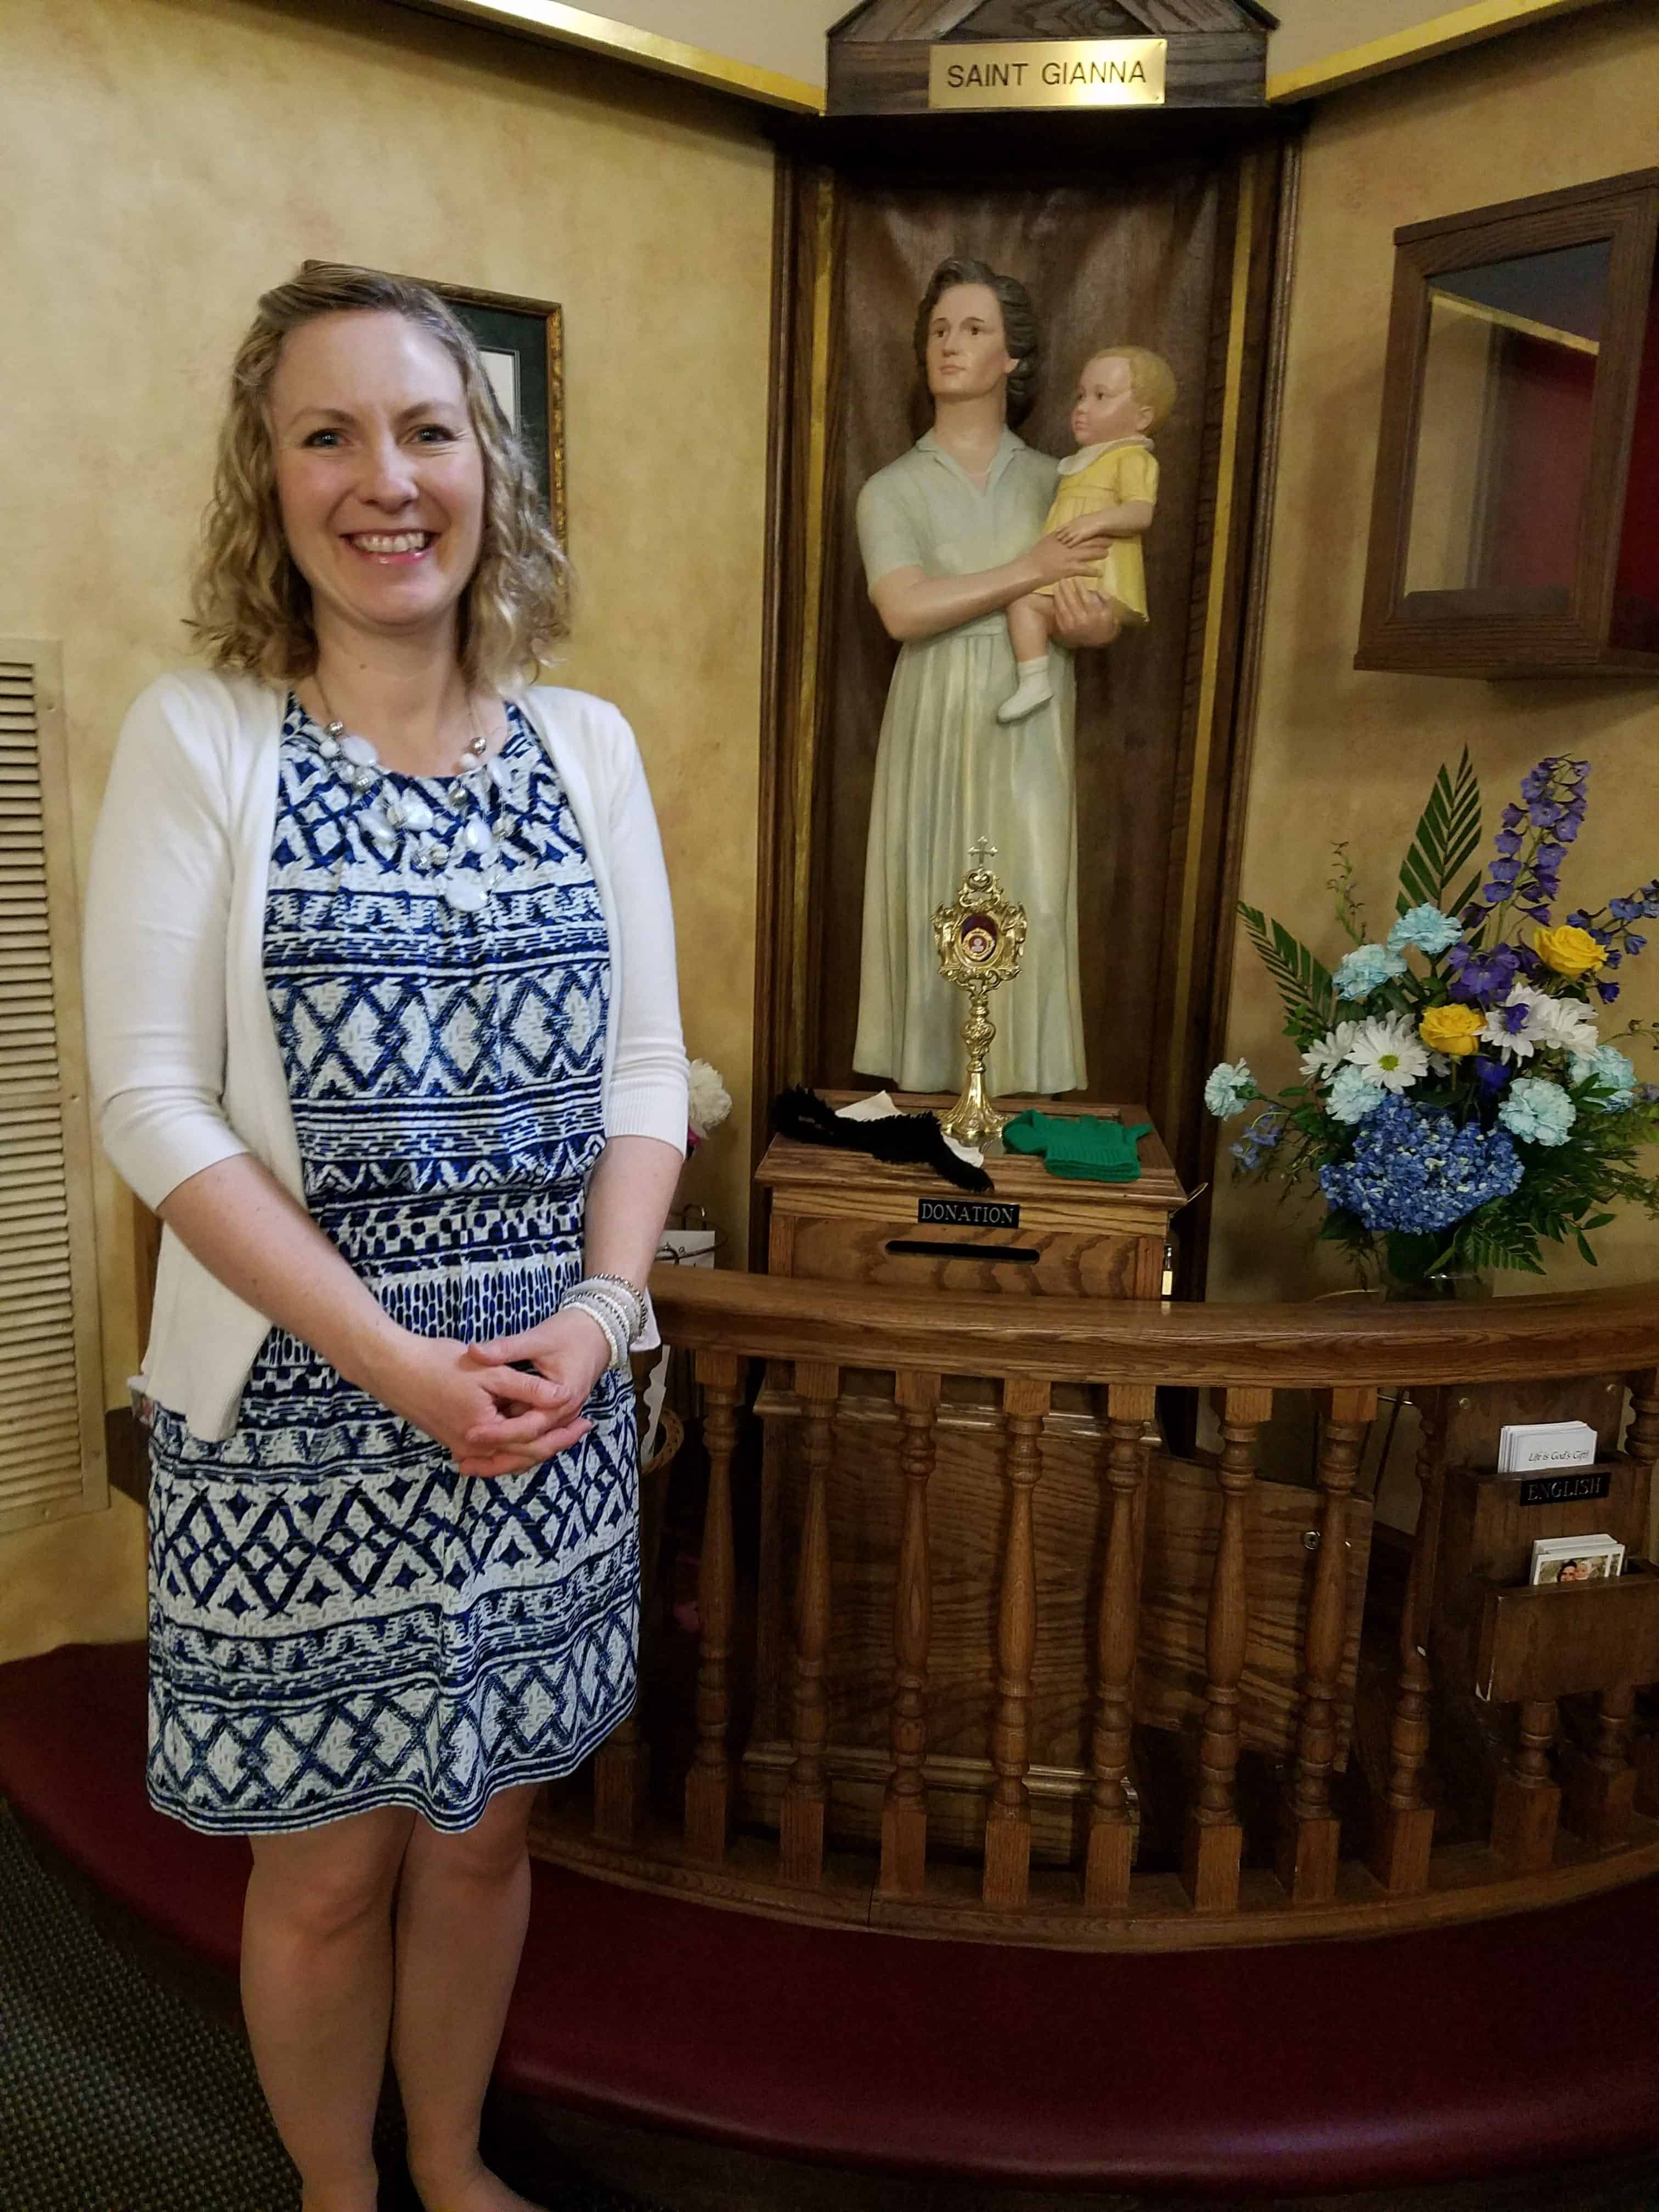 Praying to Saint Gianna Beretta Molla for Fertility - To Make a Mommy